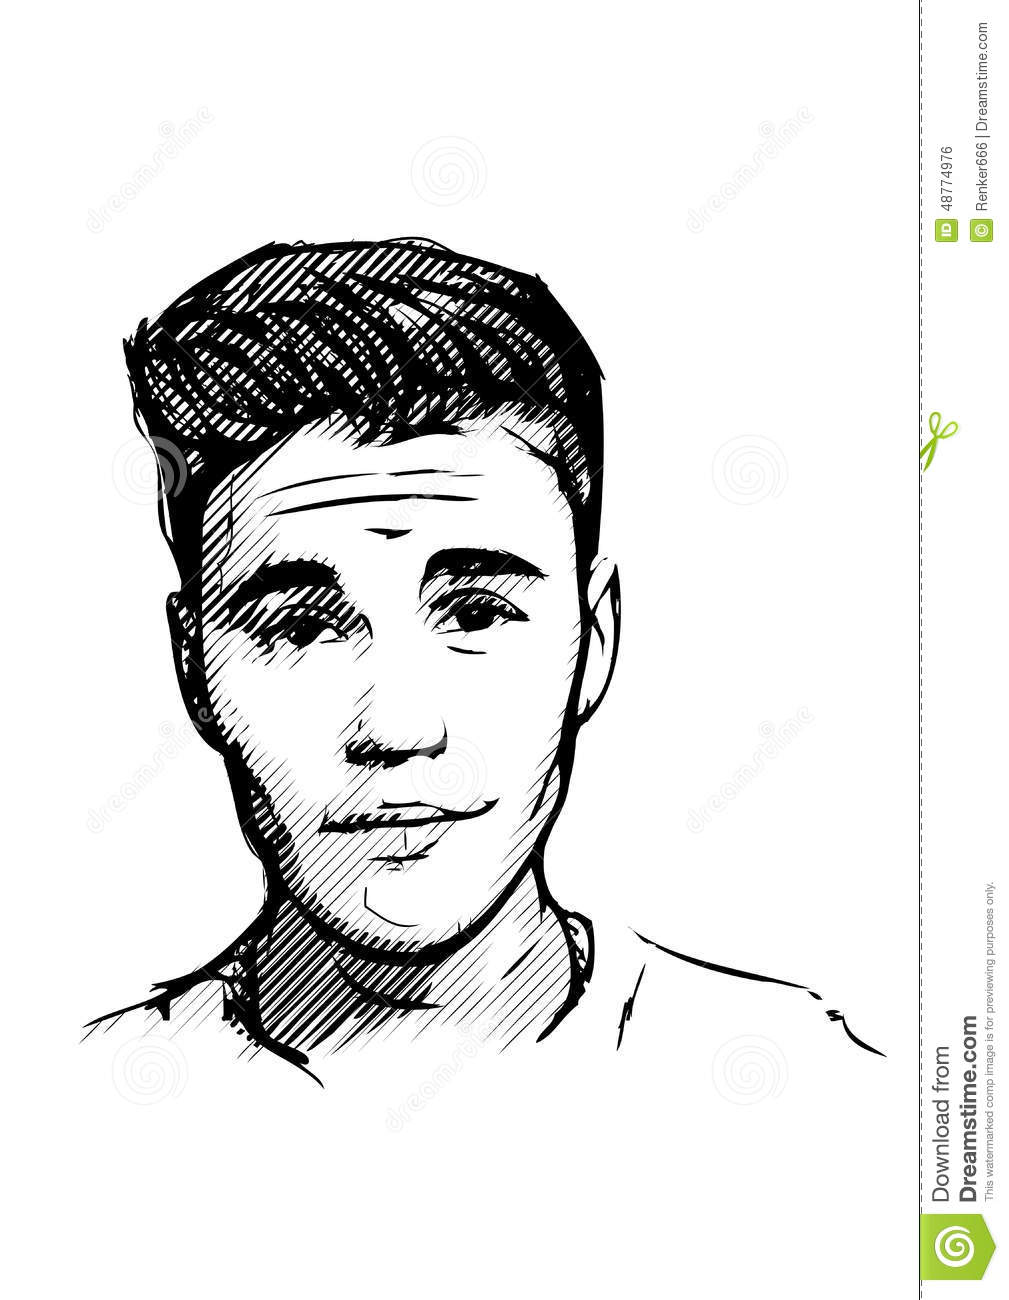 Justin Bieber Stock Illustrations U2013 -Justin Bieber Stock Illustrations u2013 4 Justin Bieber Stock Illustrations,  Vectors u0026 Clipart - Dreamstime-16